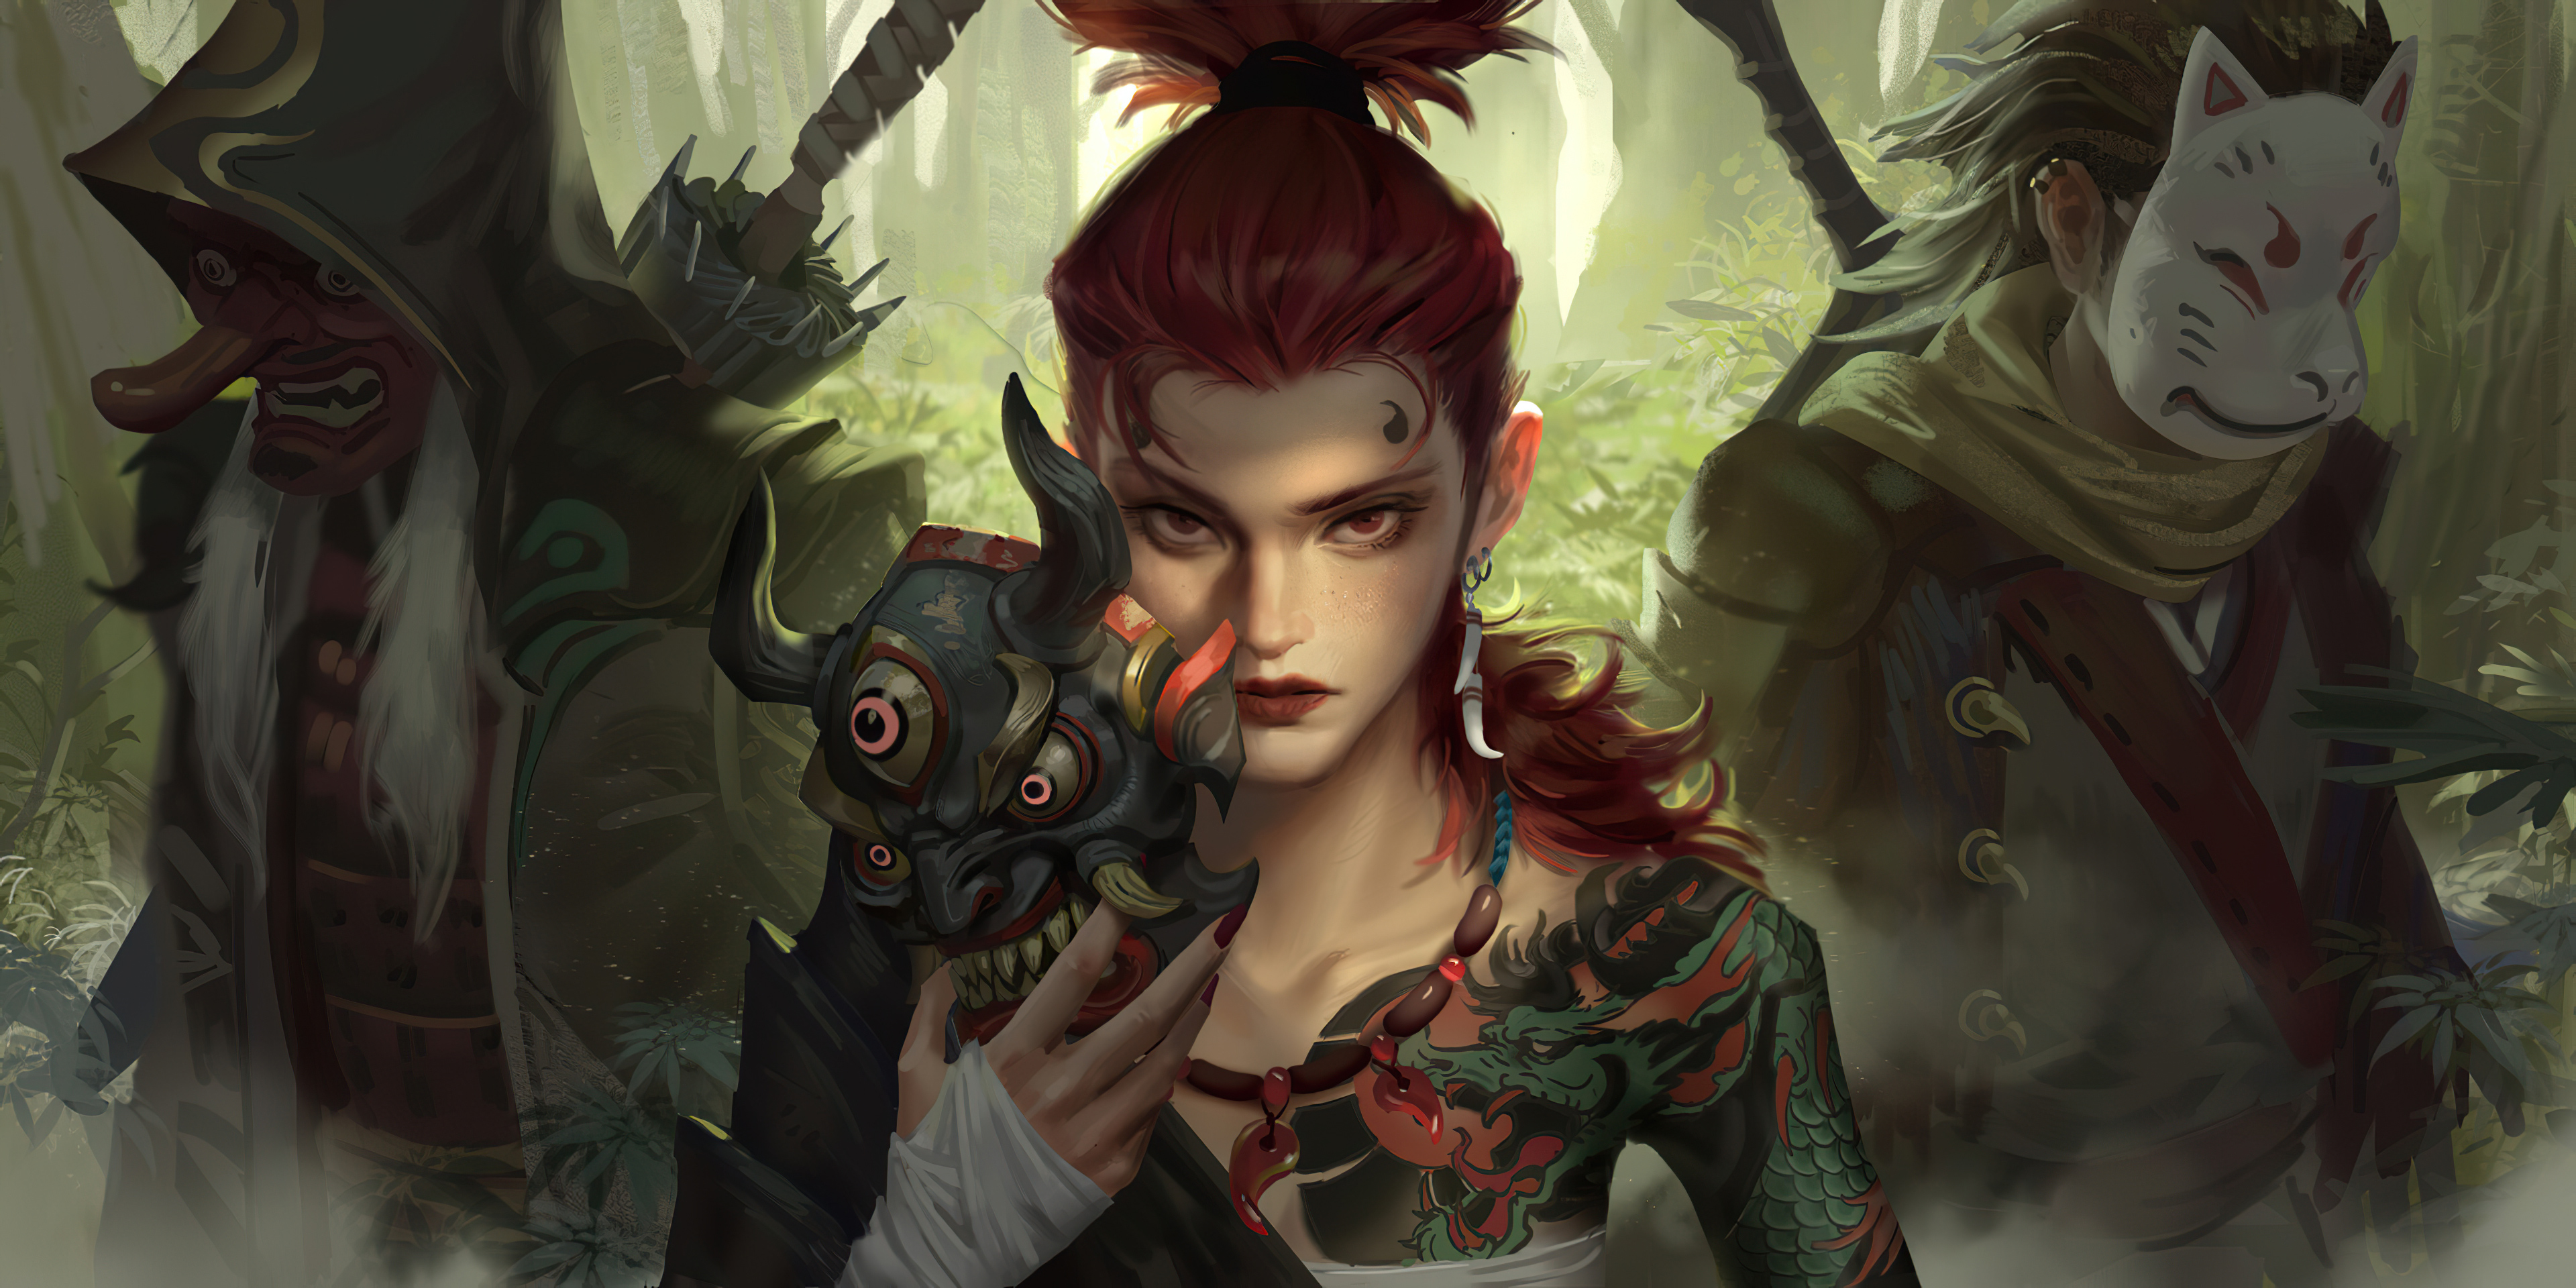 Woman Warrior Girl Red Hair Tattoo Mask Red Eyes 3840x1920